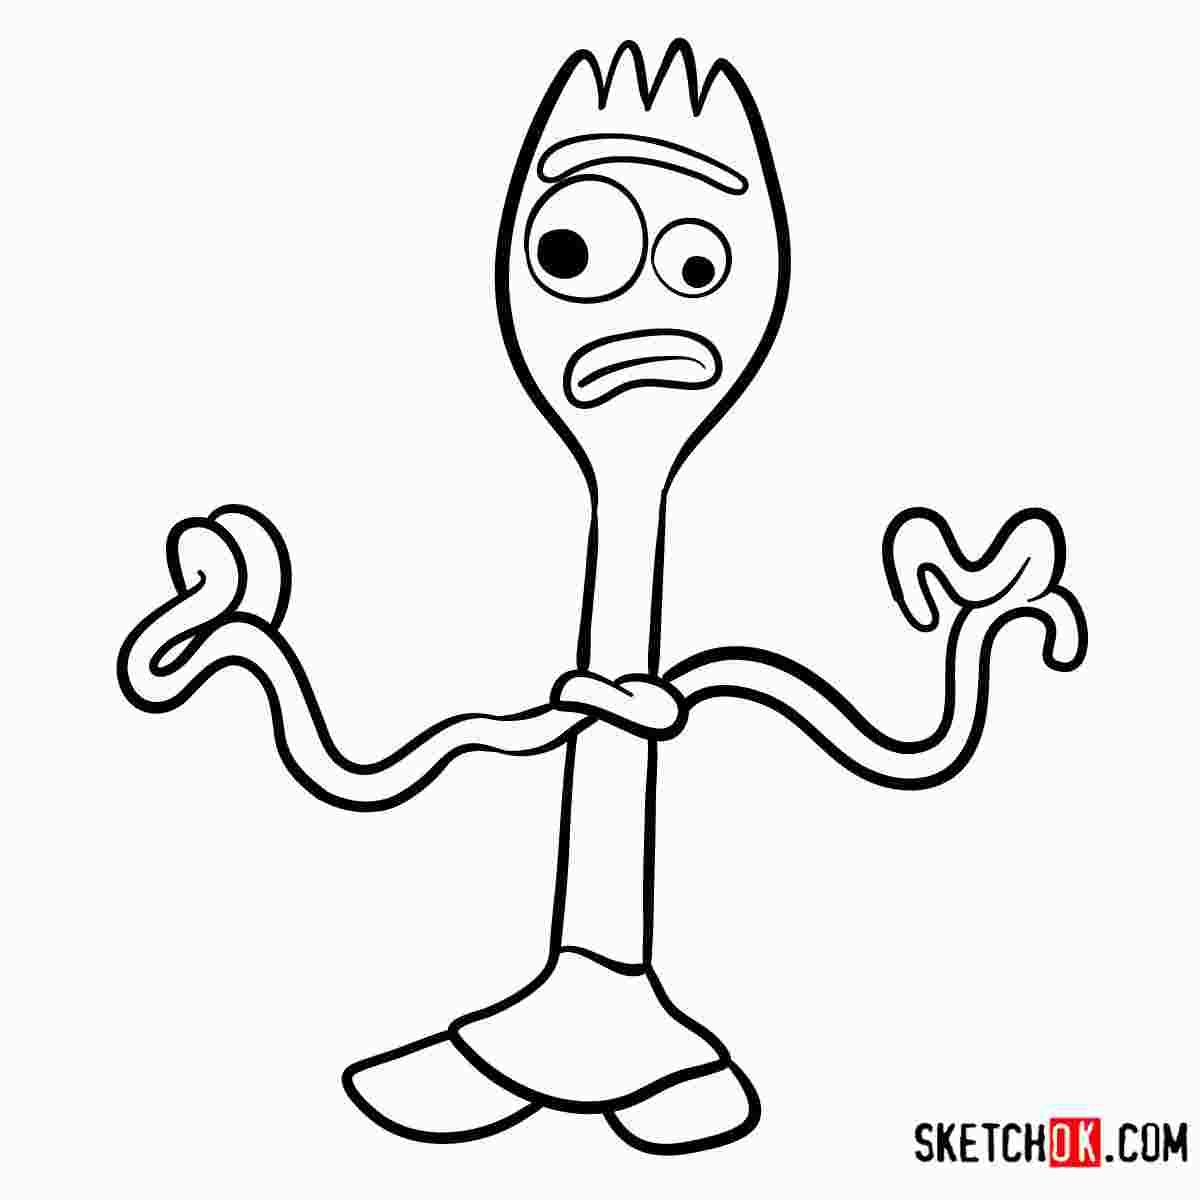 Forky Face Coloring Page Easy Disney Drawings Disney Character Drawings Disney Drawing Tutorial